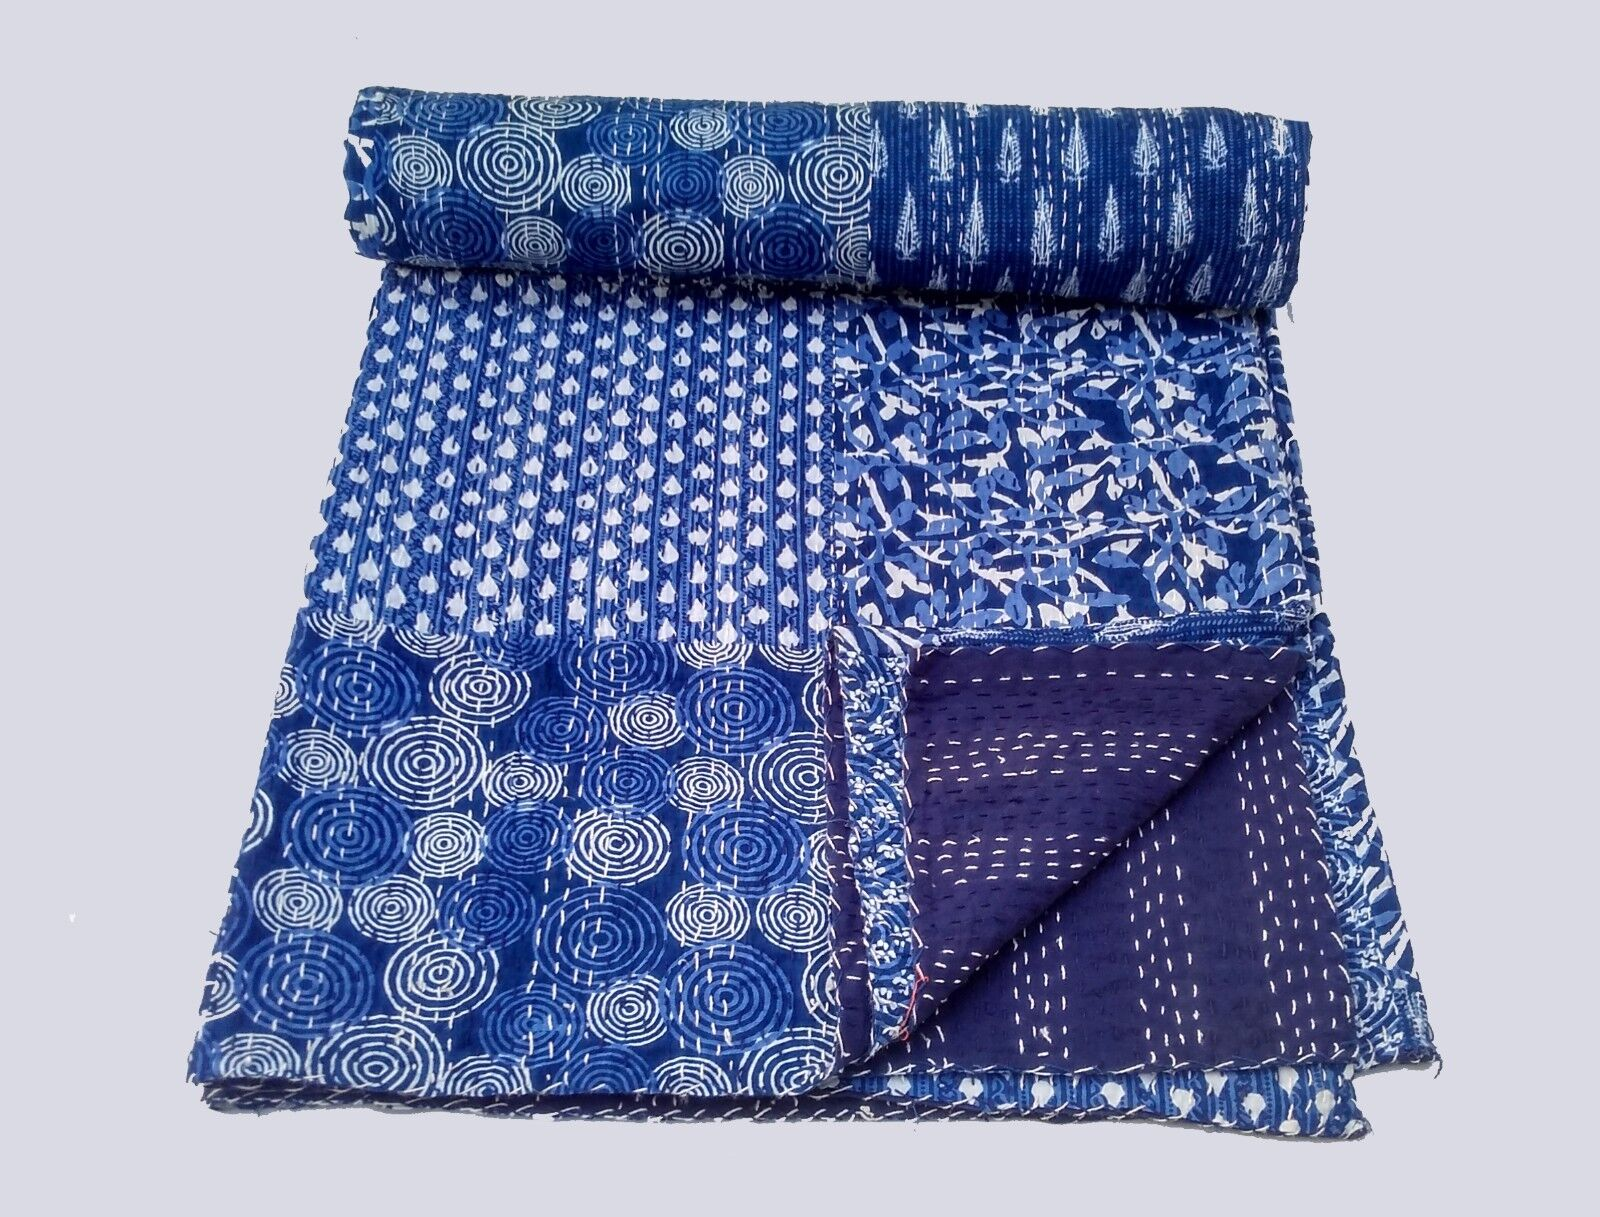 bluee Indigo Cotton Patchwork Print Kantha Quilt blanket bedspread throw queen